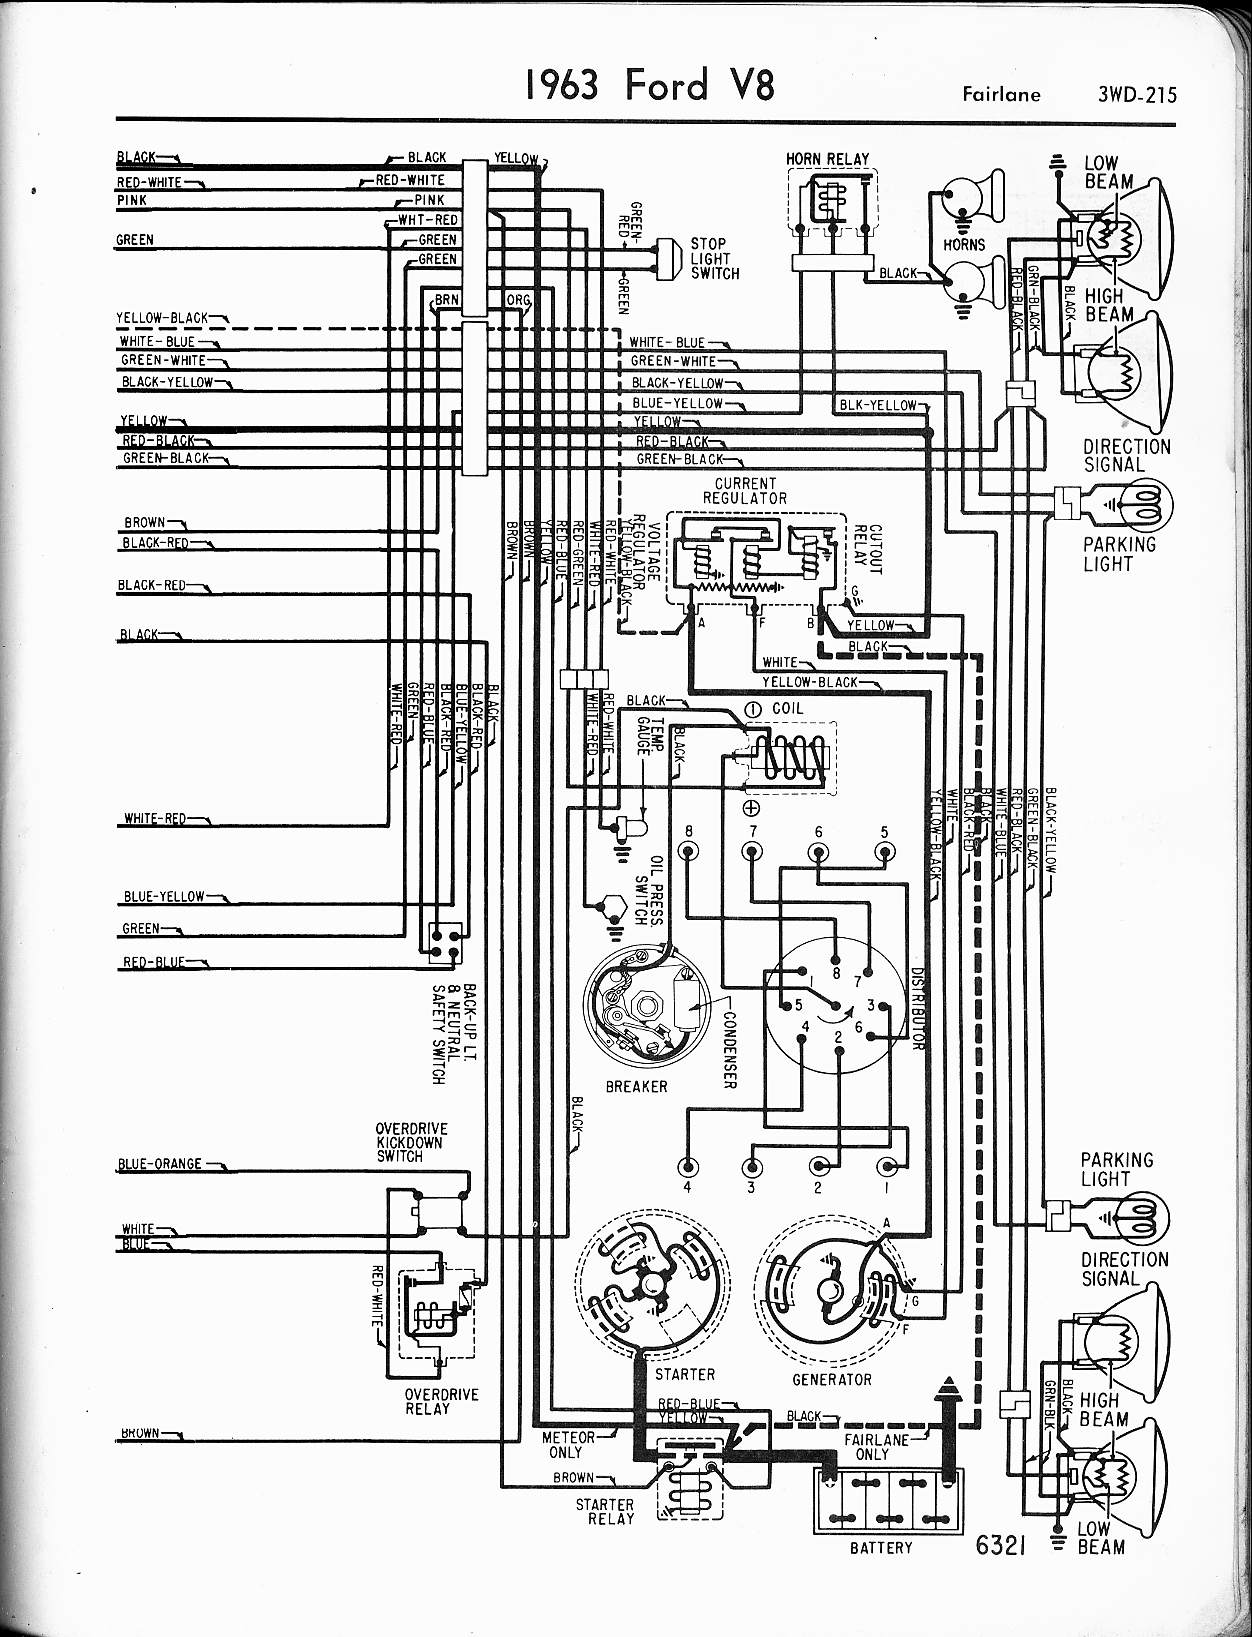 hight resolution of 1957 ford ignition switch wiring diagram database reg 1965 ford f100 ignition switch wiring 1965 ford ignition switch wiring